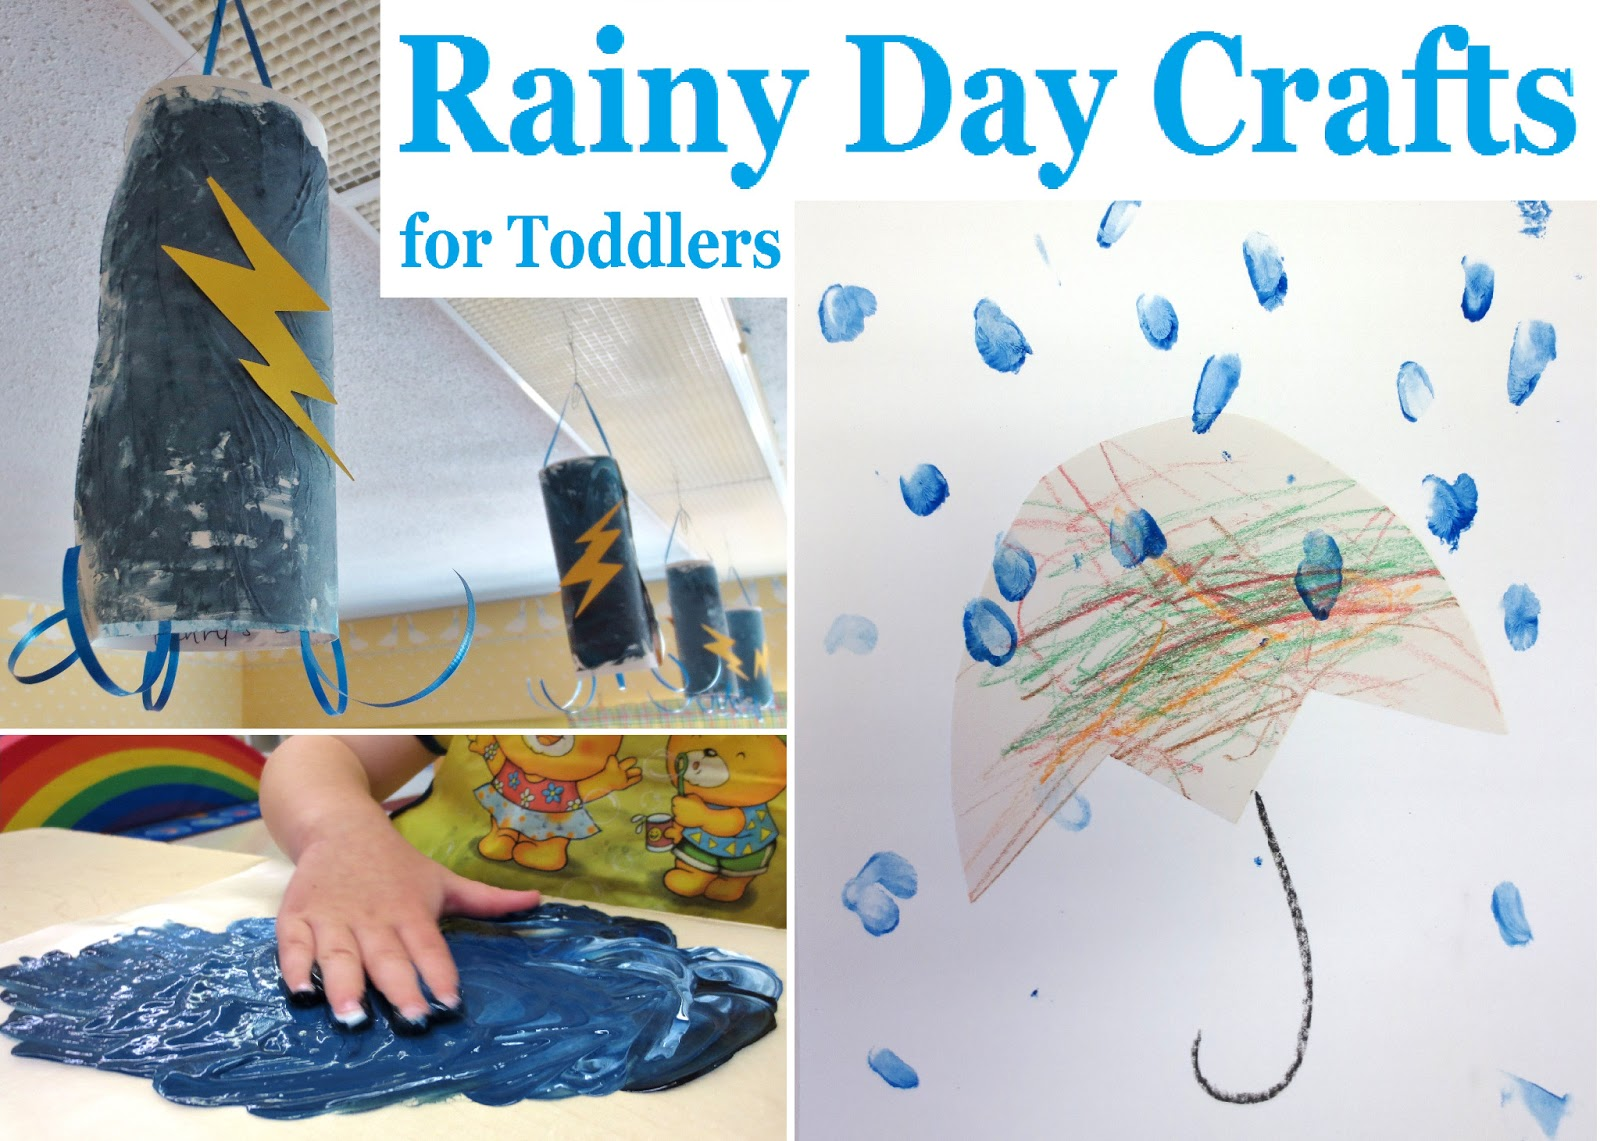 Rainy Day Crafts For Toddlers on Preschool Fingerpaint